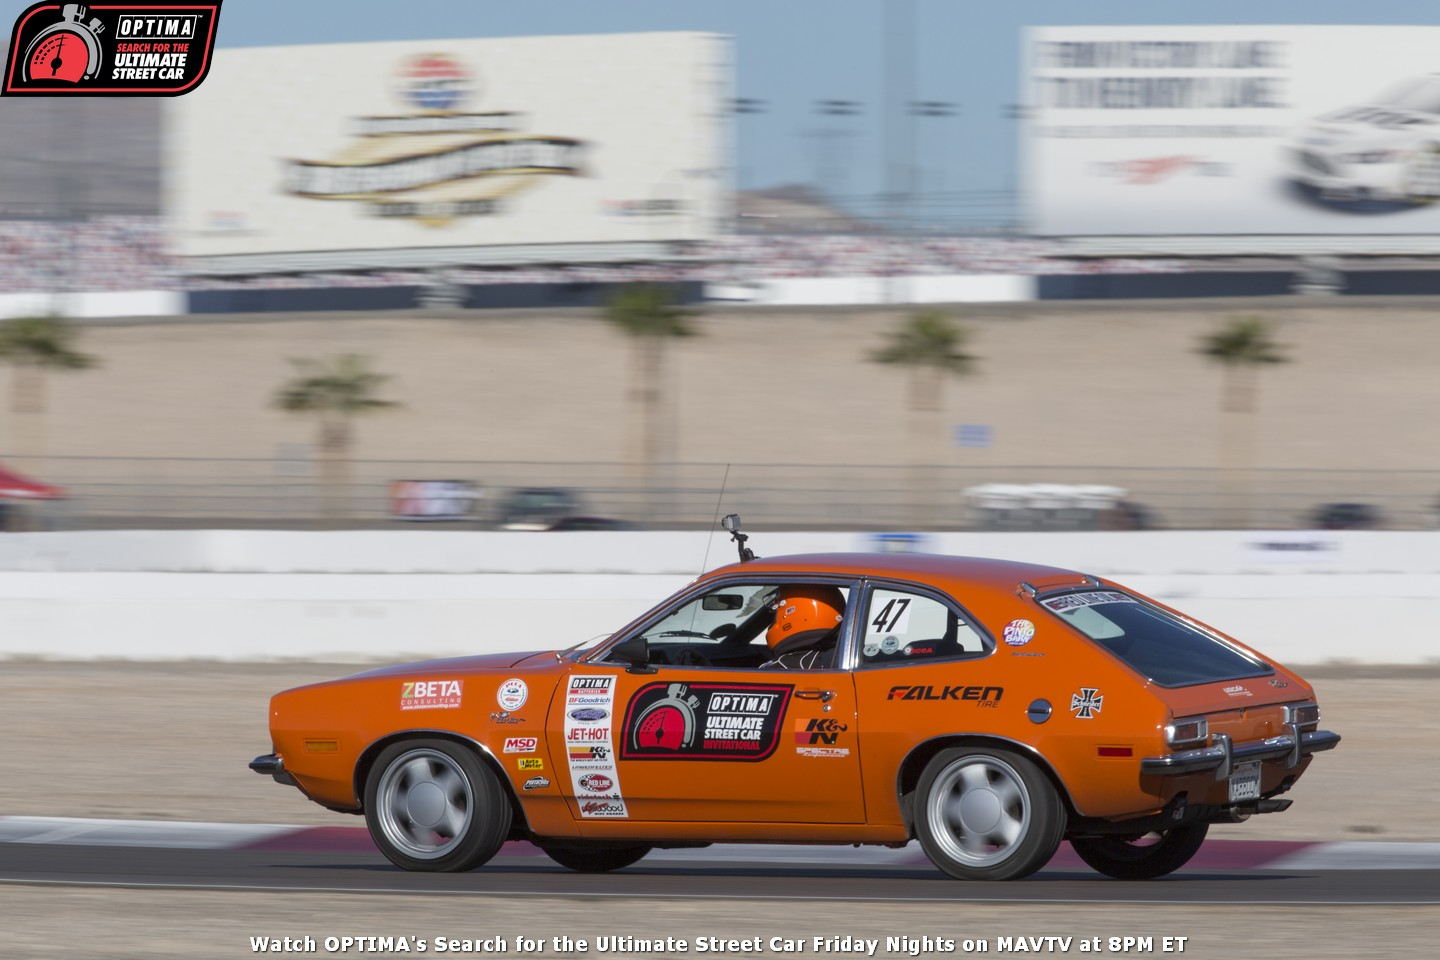 p-Joe-Escobar-1974-Ford-Pinto-OPTIMA-Ultimate-Street-Car-Invitational-2014-BFGoodrich-Hot-Lap-Challenge_176.jpg